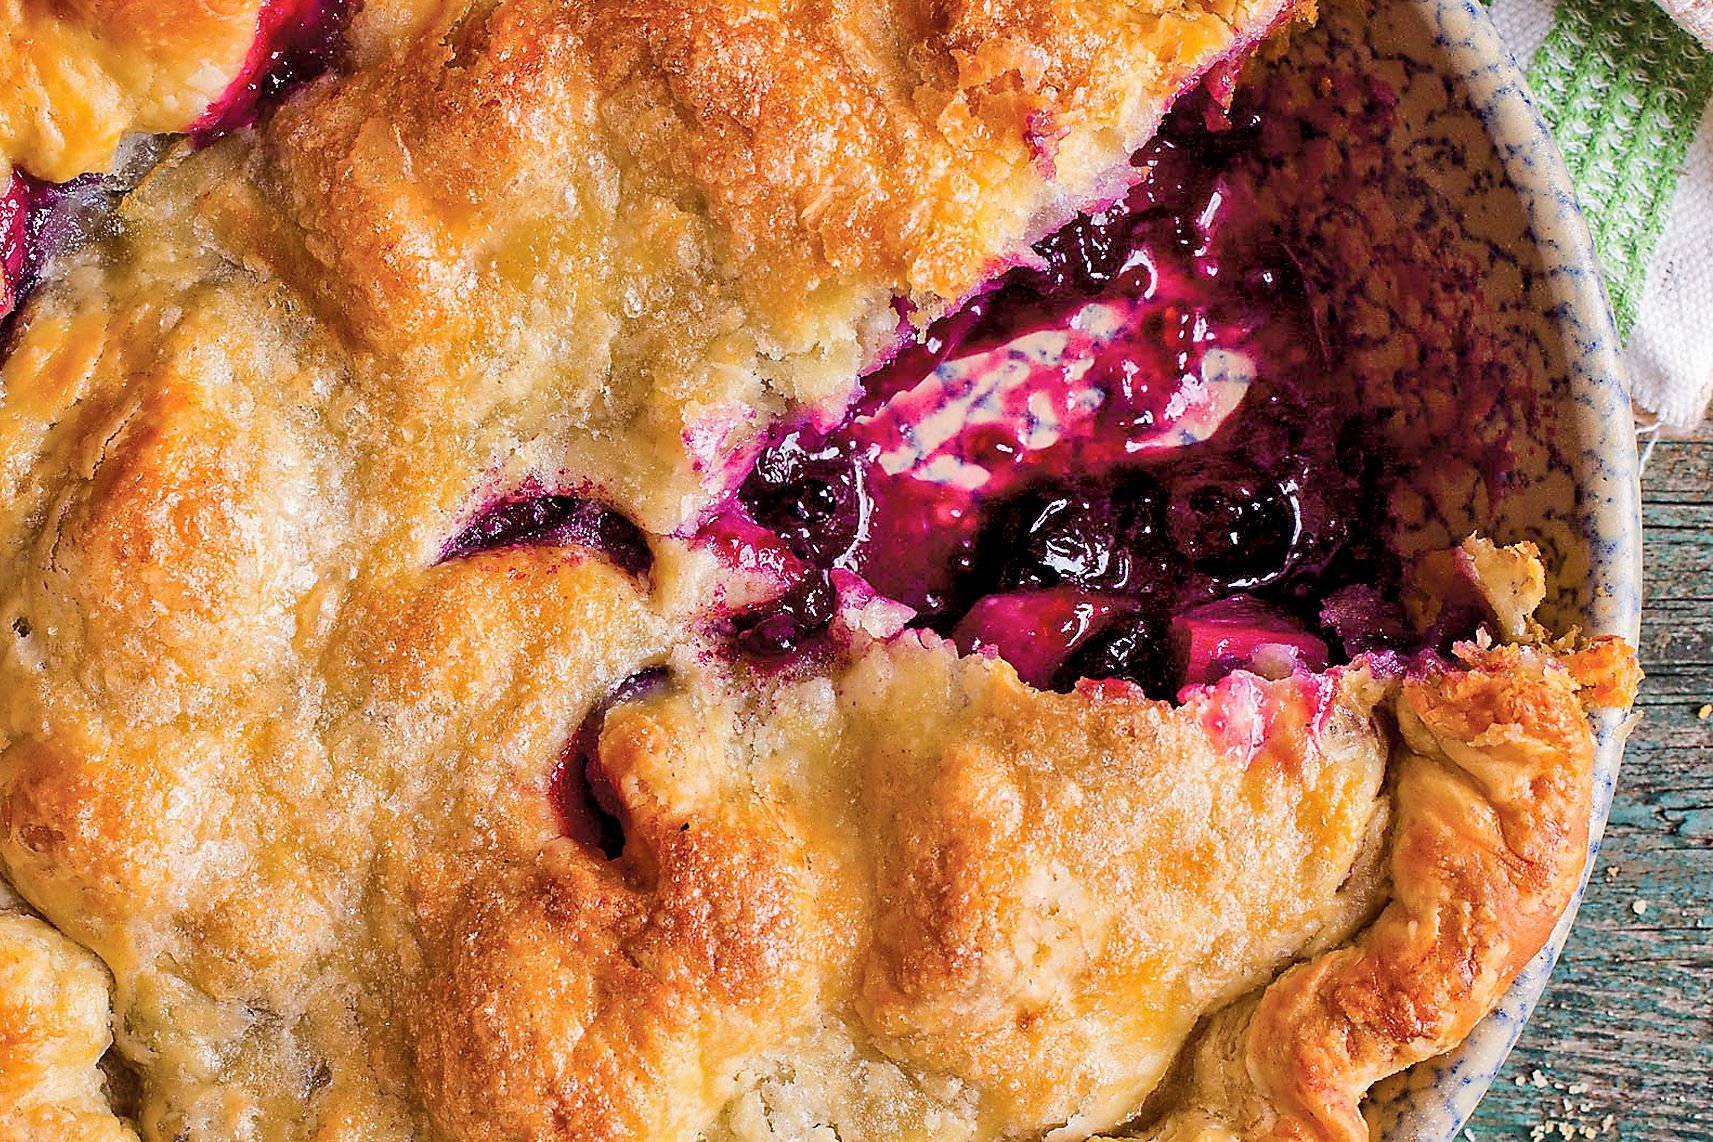 Rhuberry Bluebarb Pie-3 Rhuberry Bluebarb Pie Two fruits combine making a new spin on rhubarb pie.